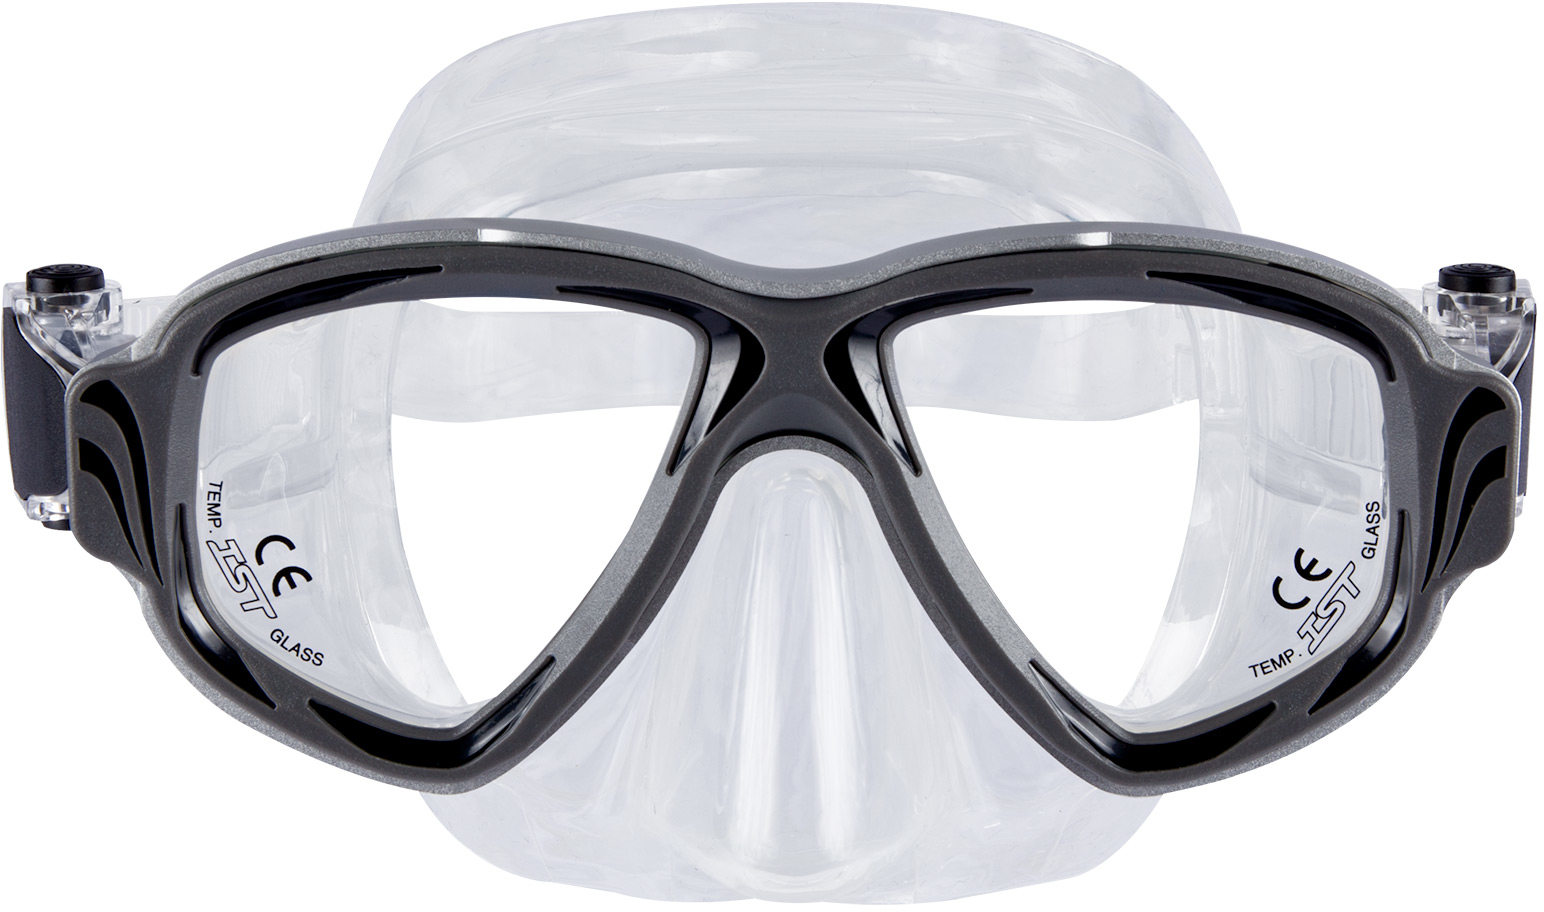 IST Synthesis Aluminum Two Window Mask - Black